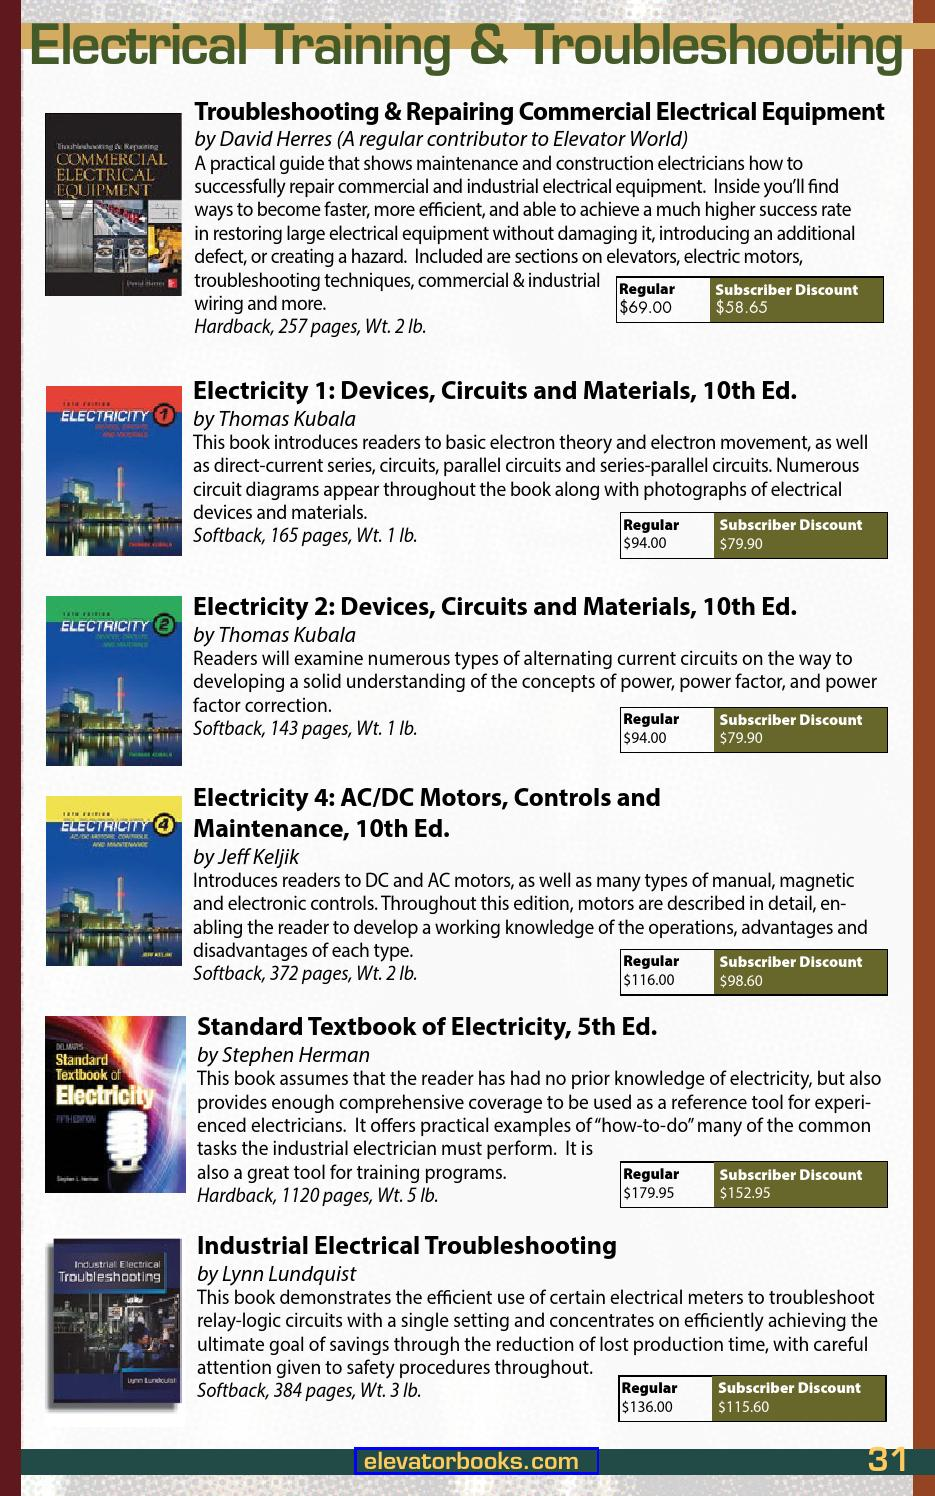 Fall Winter 2015 16 Educational Materials By Elevator World Issuu Circuitforcircuitconceptspage2jpg